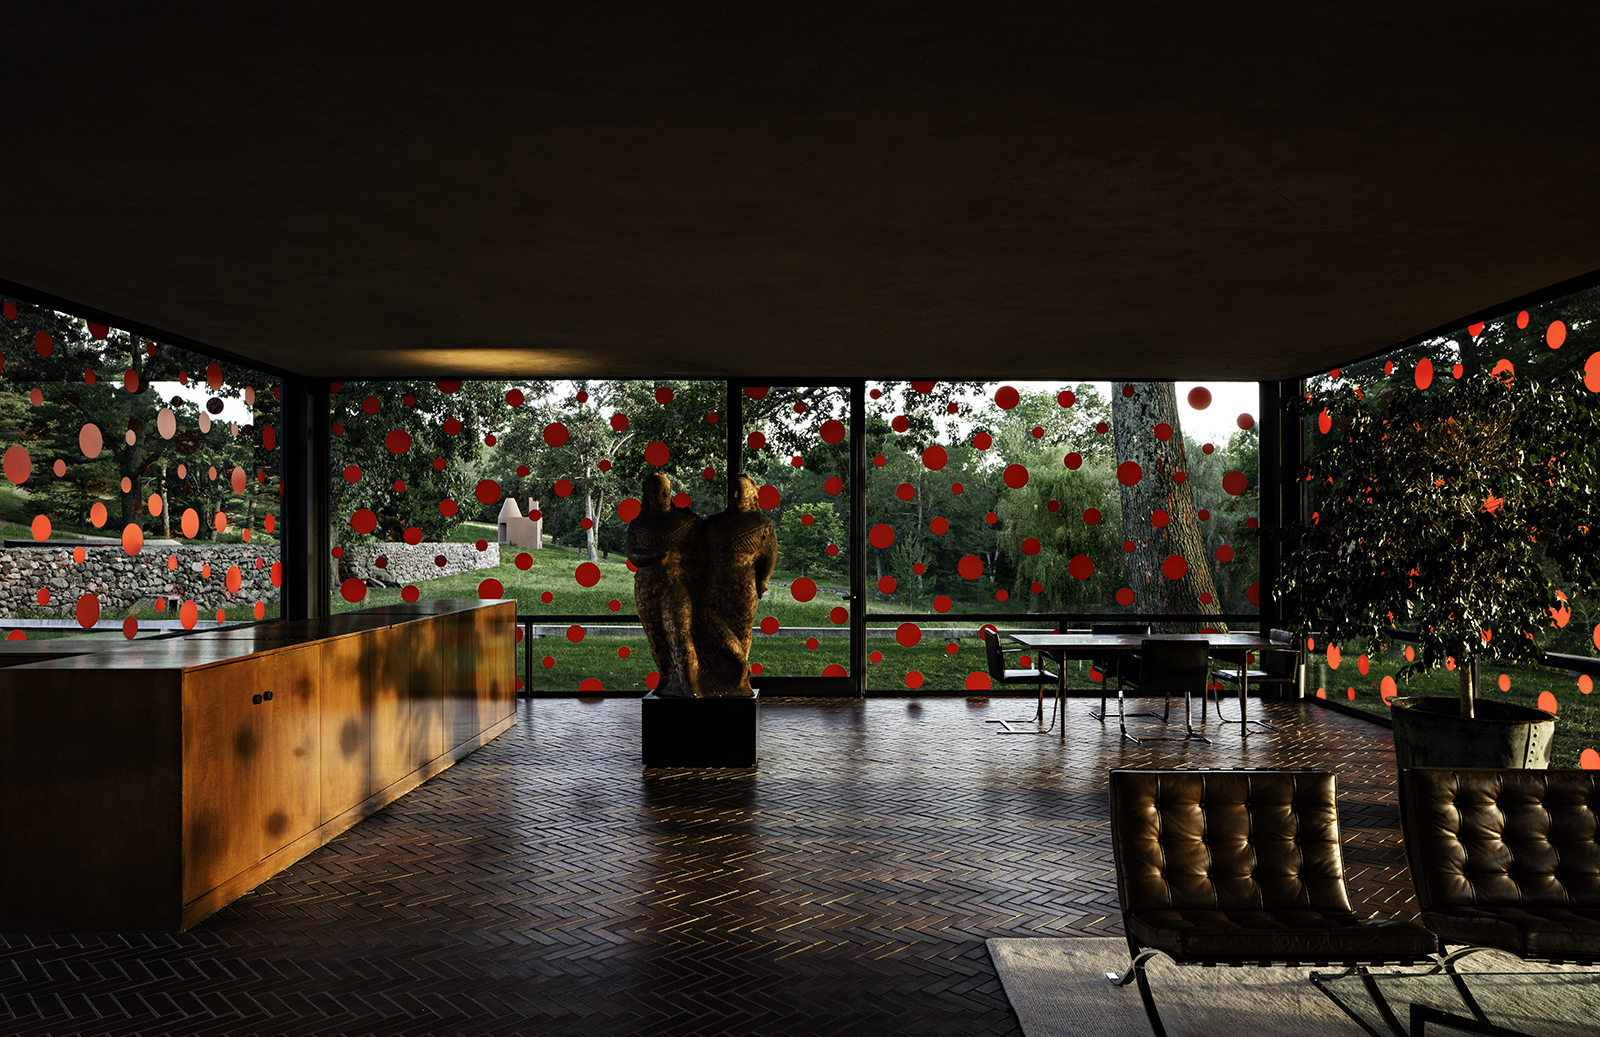 Yayoi Kusama's polka dot installation at Glass House